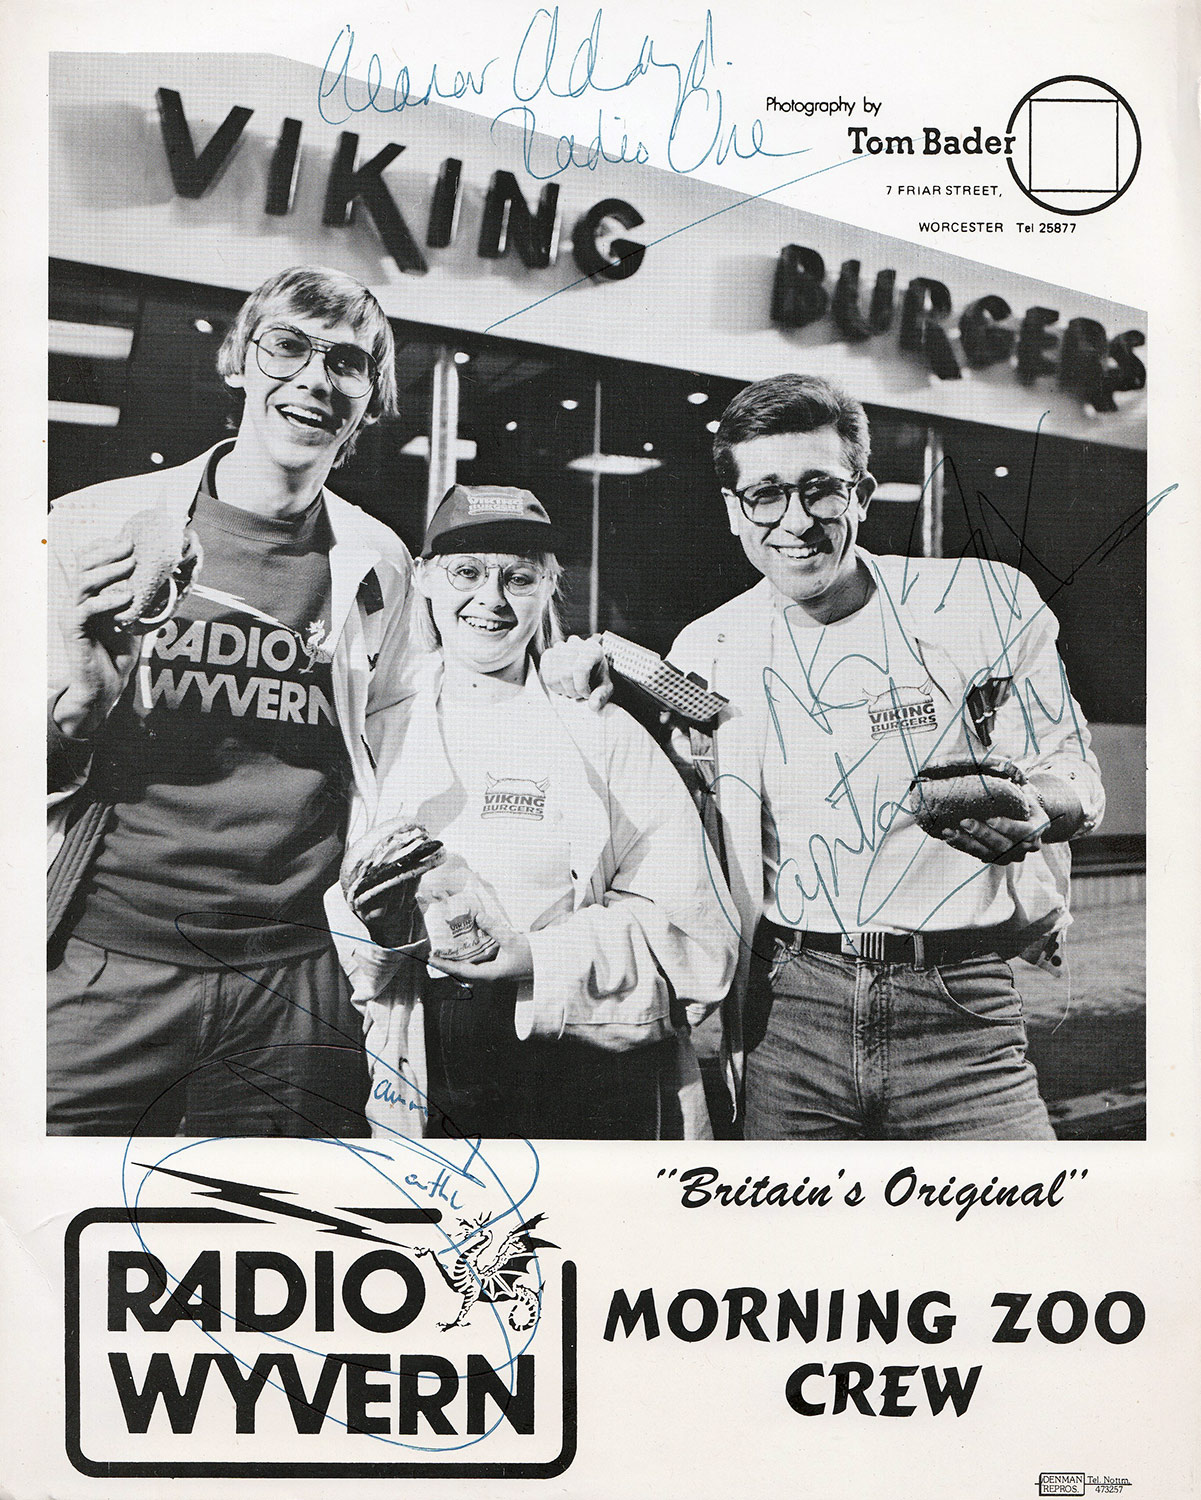 britains-original-morning-zoo